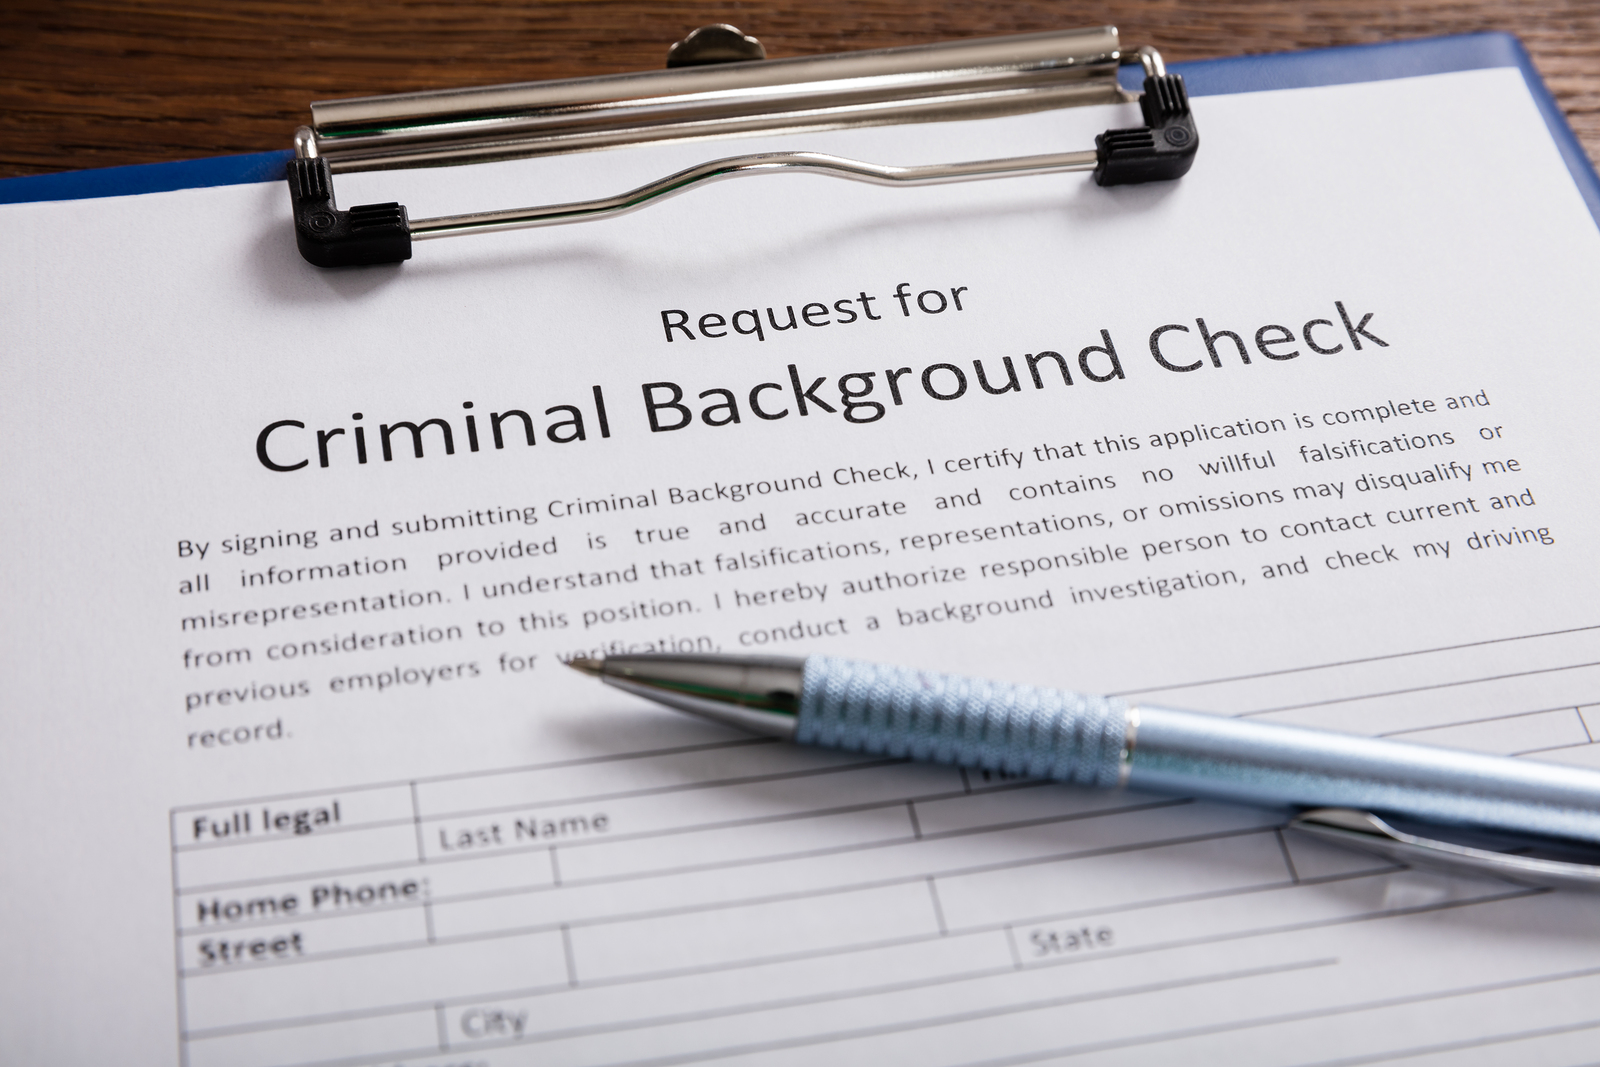 What Can an Advanced Background Check Uncover?